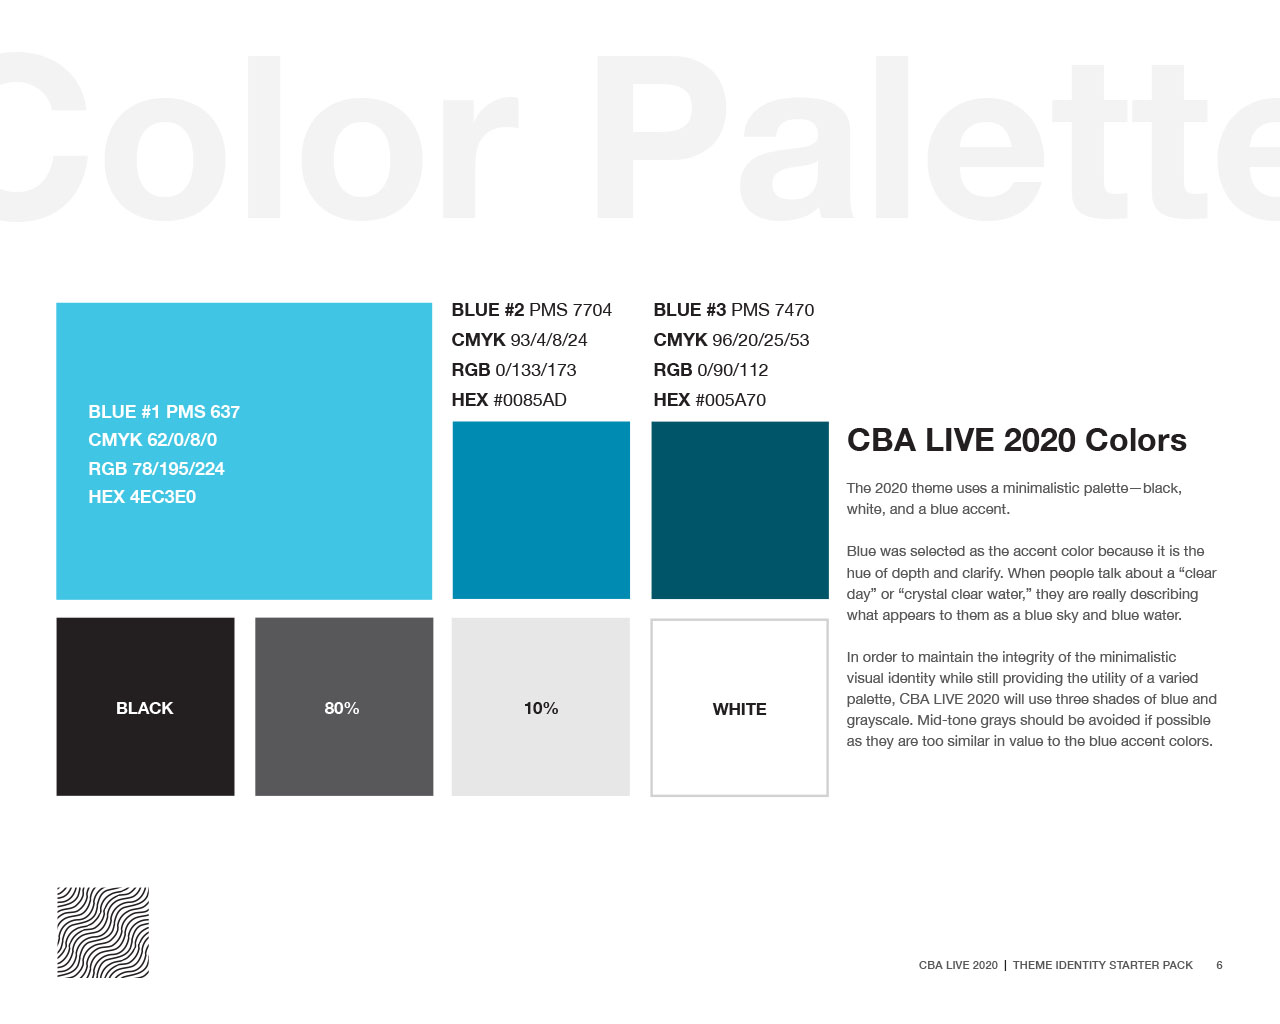 Grid displaying CBA LIVE 2020 color palette